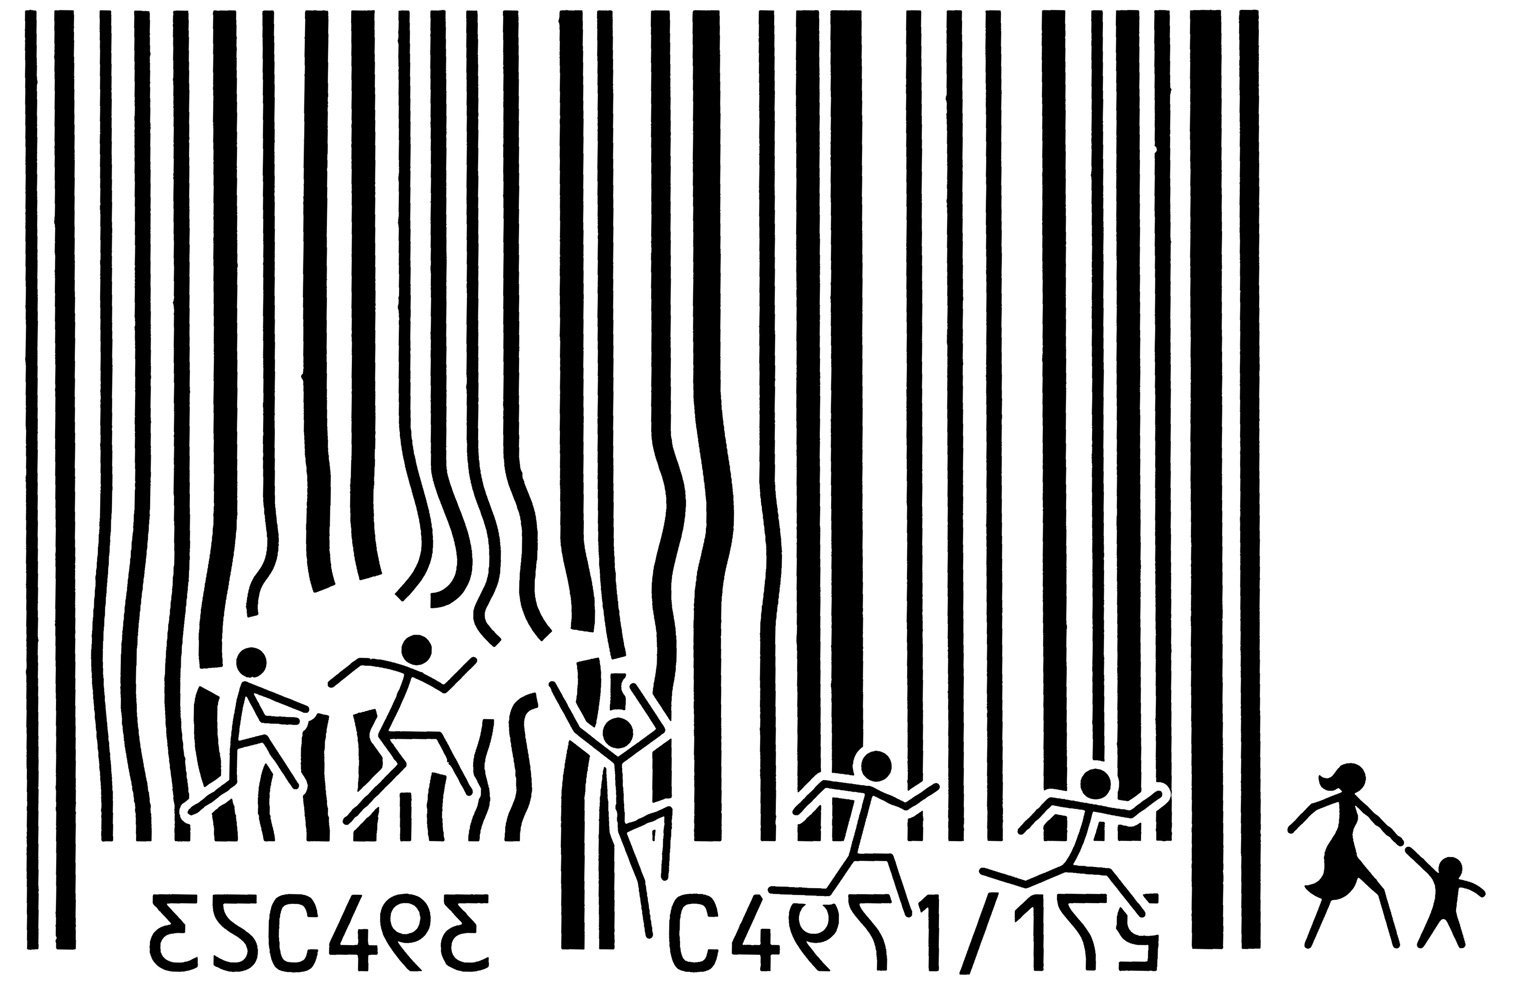 barcode from adbusters